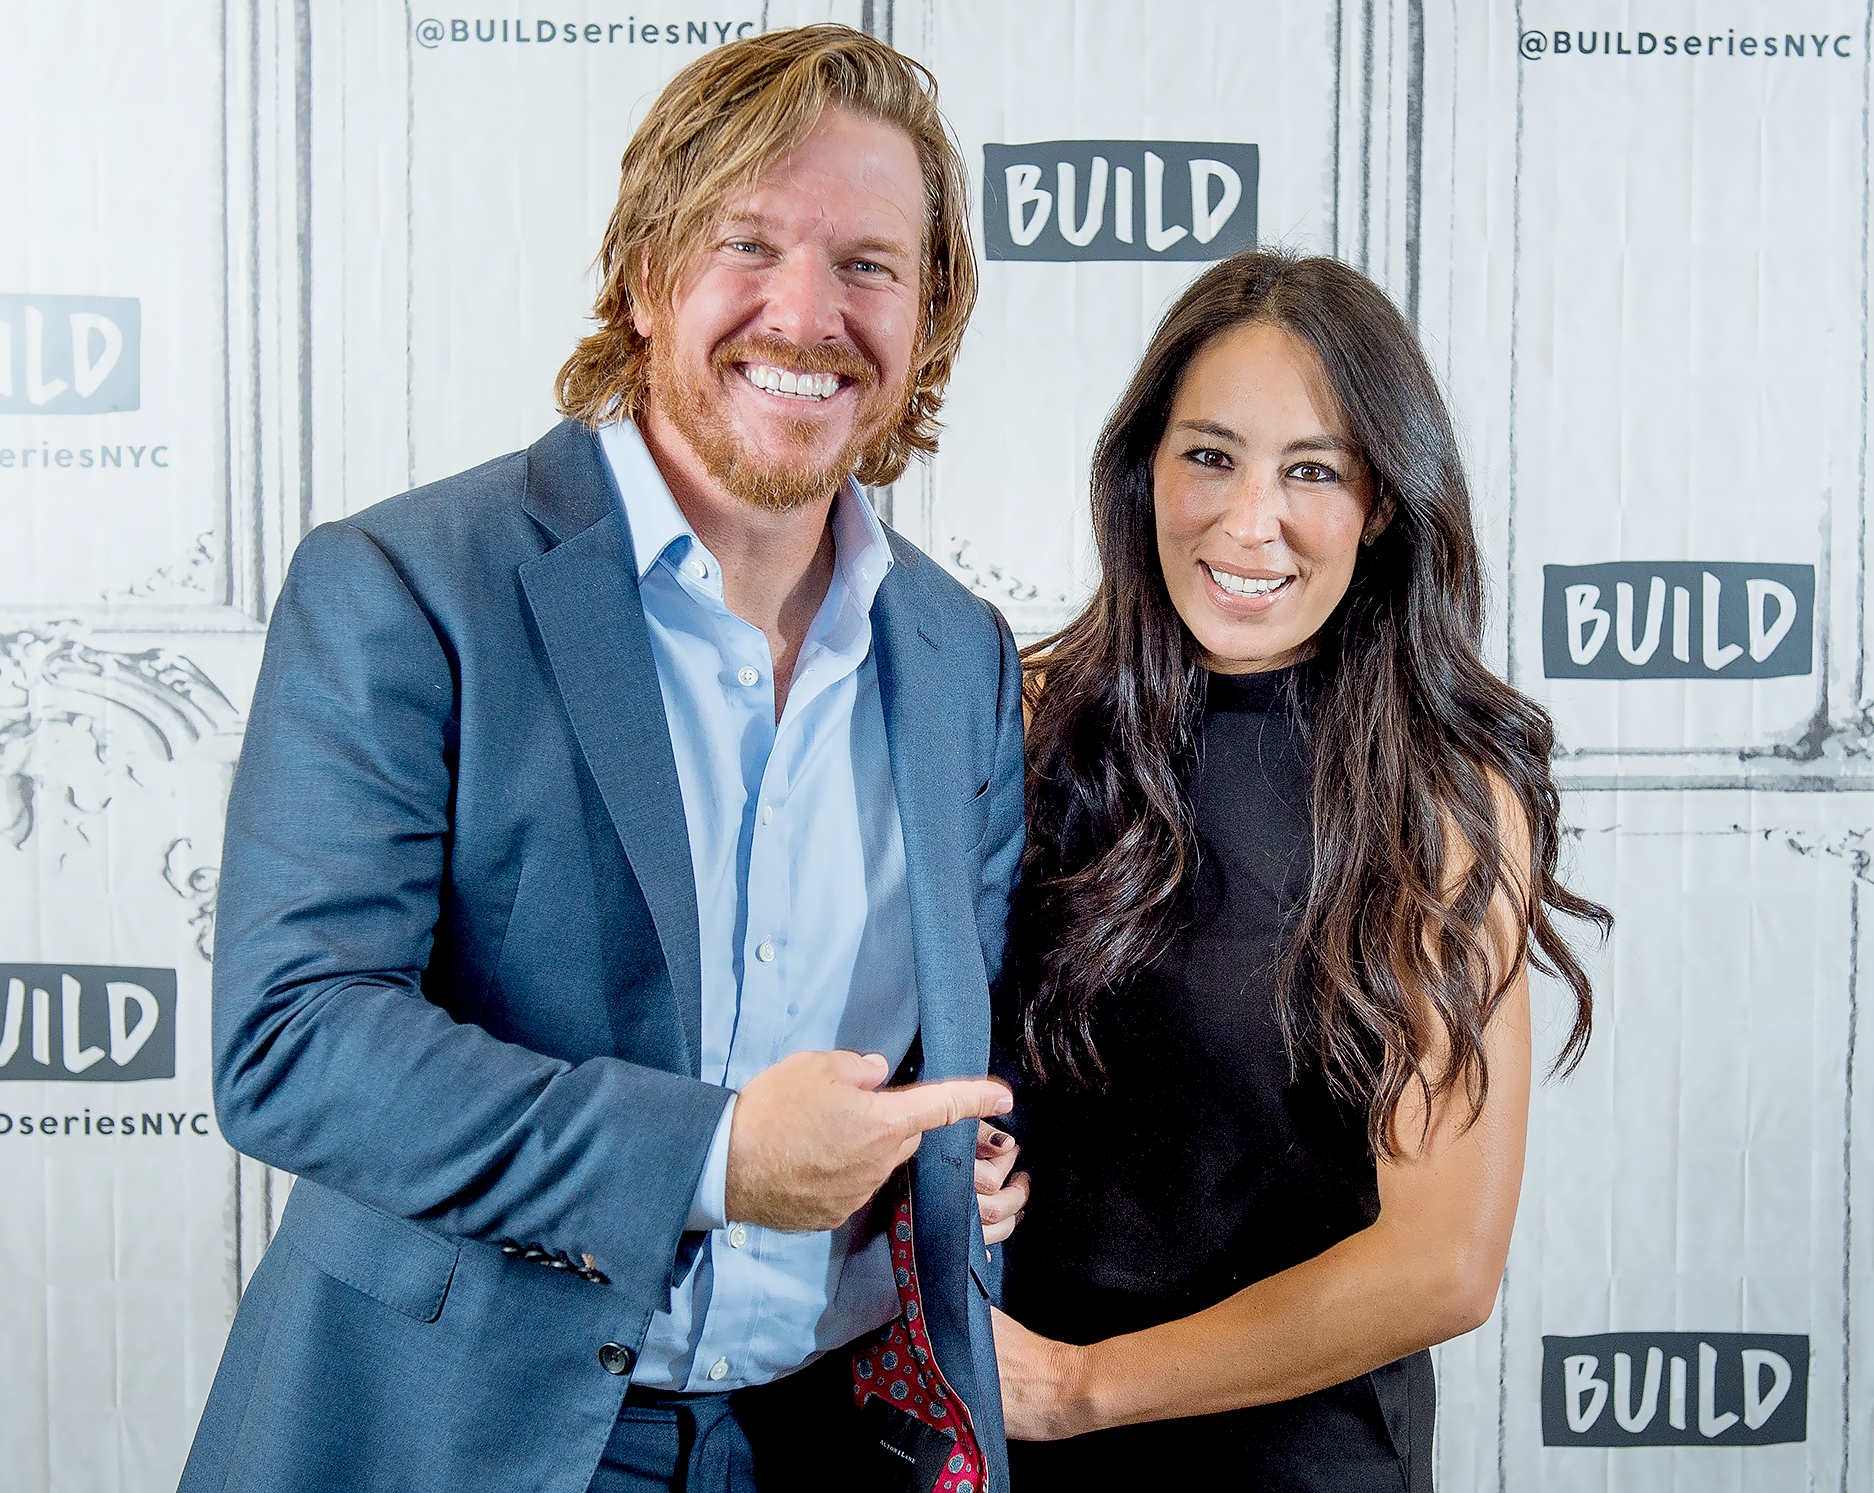 Fixer Upper's Chip & Joanna Gaines Announce They're Having A Baby BOY!